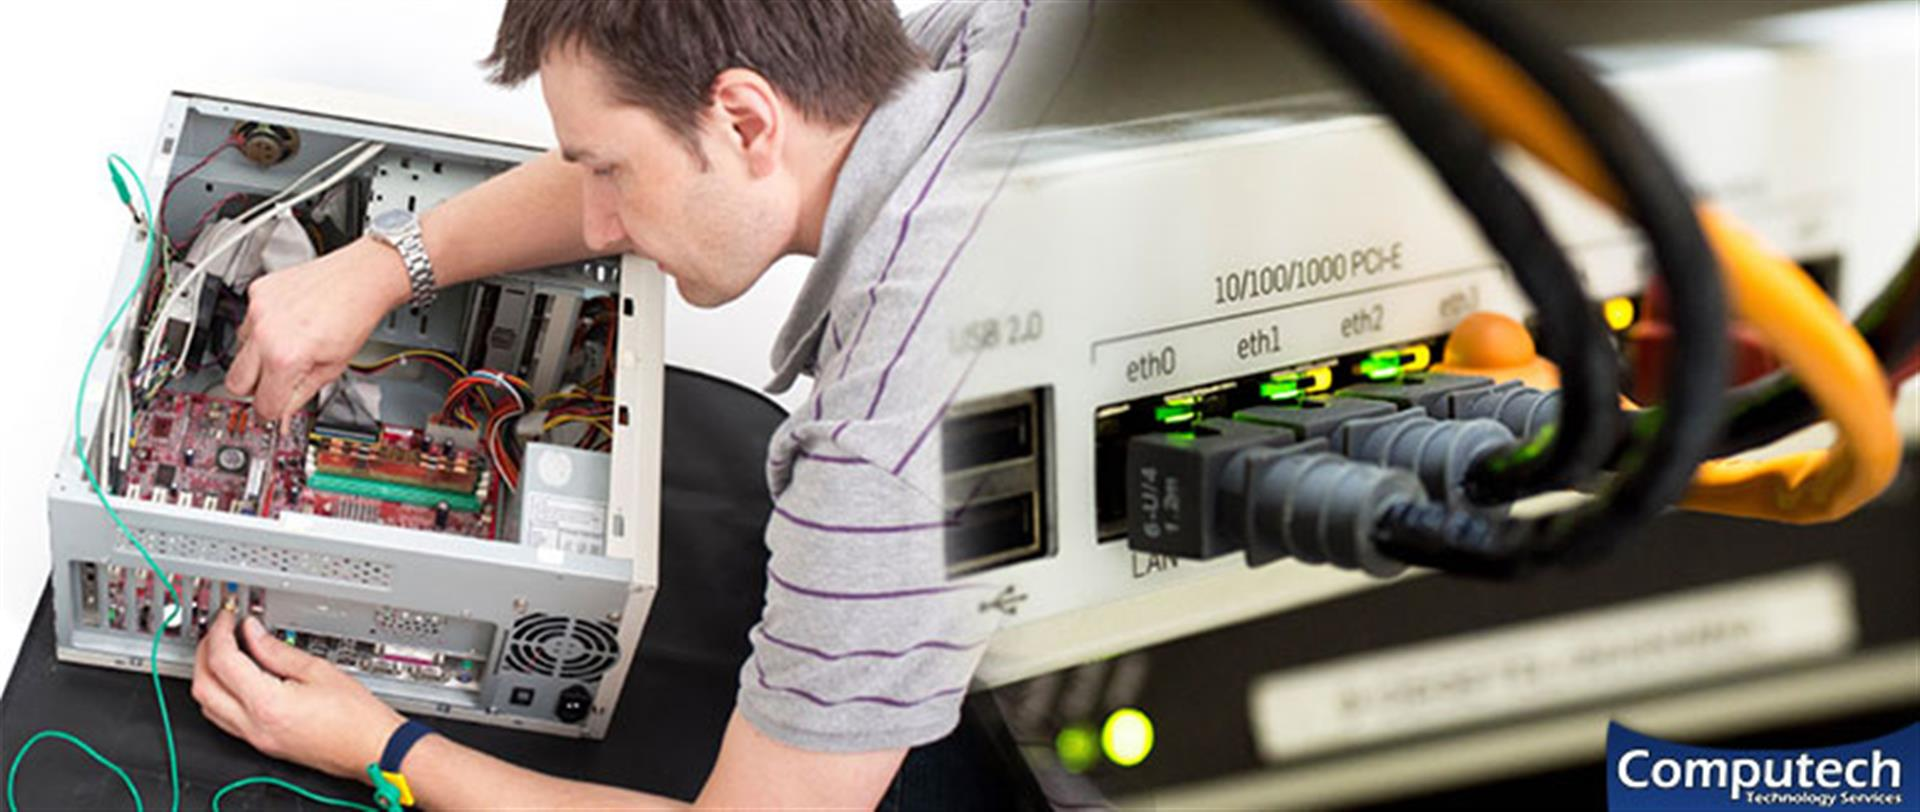 Danville Virginia On Site Computer & Printer Repair, Networks, Voice & Data Cabling Services